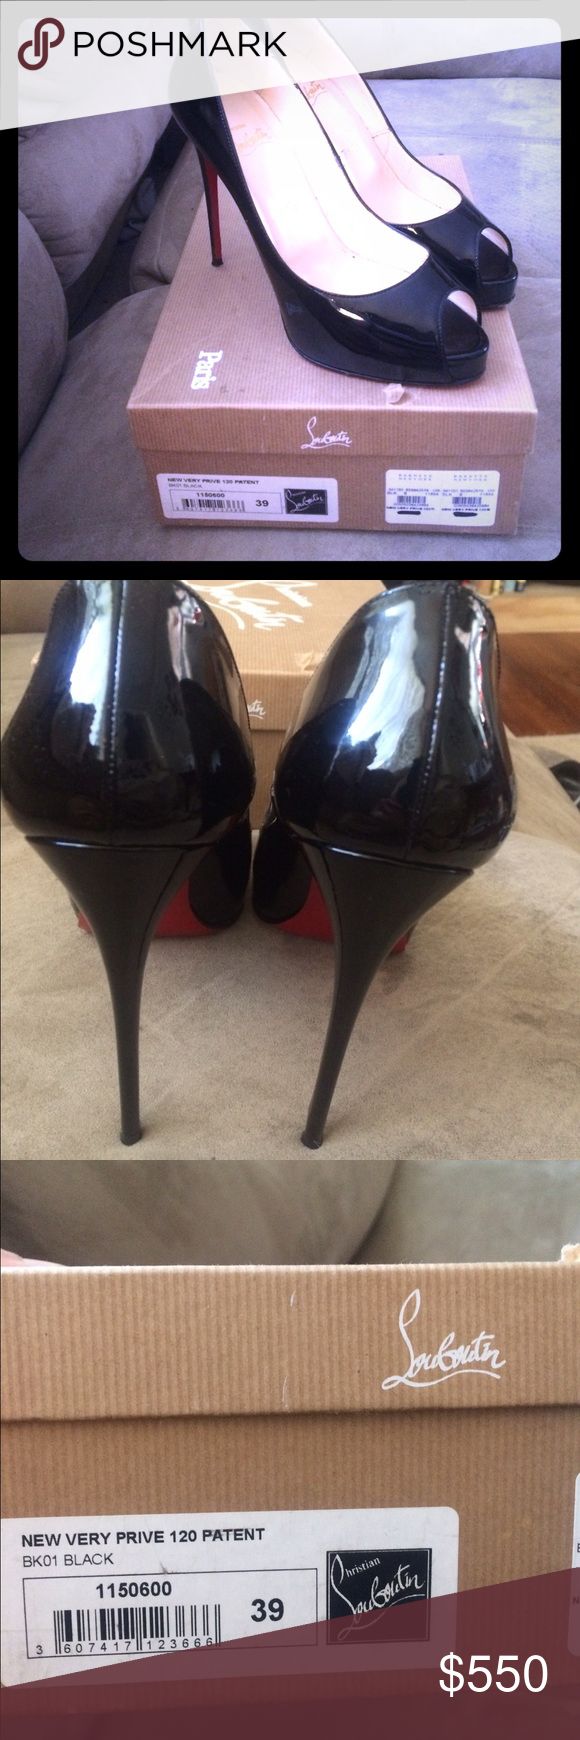 76a45b6cad1 Christian Louboutin New Very Prive 120 Patent Blk Peep toe patent leather  red bottom high heel black. Size 39 Christian Louboutin Shoes Heels